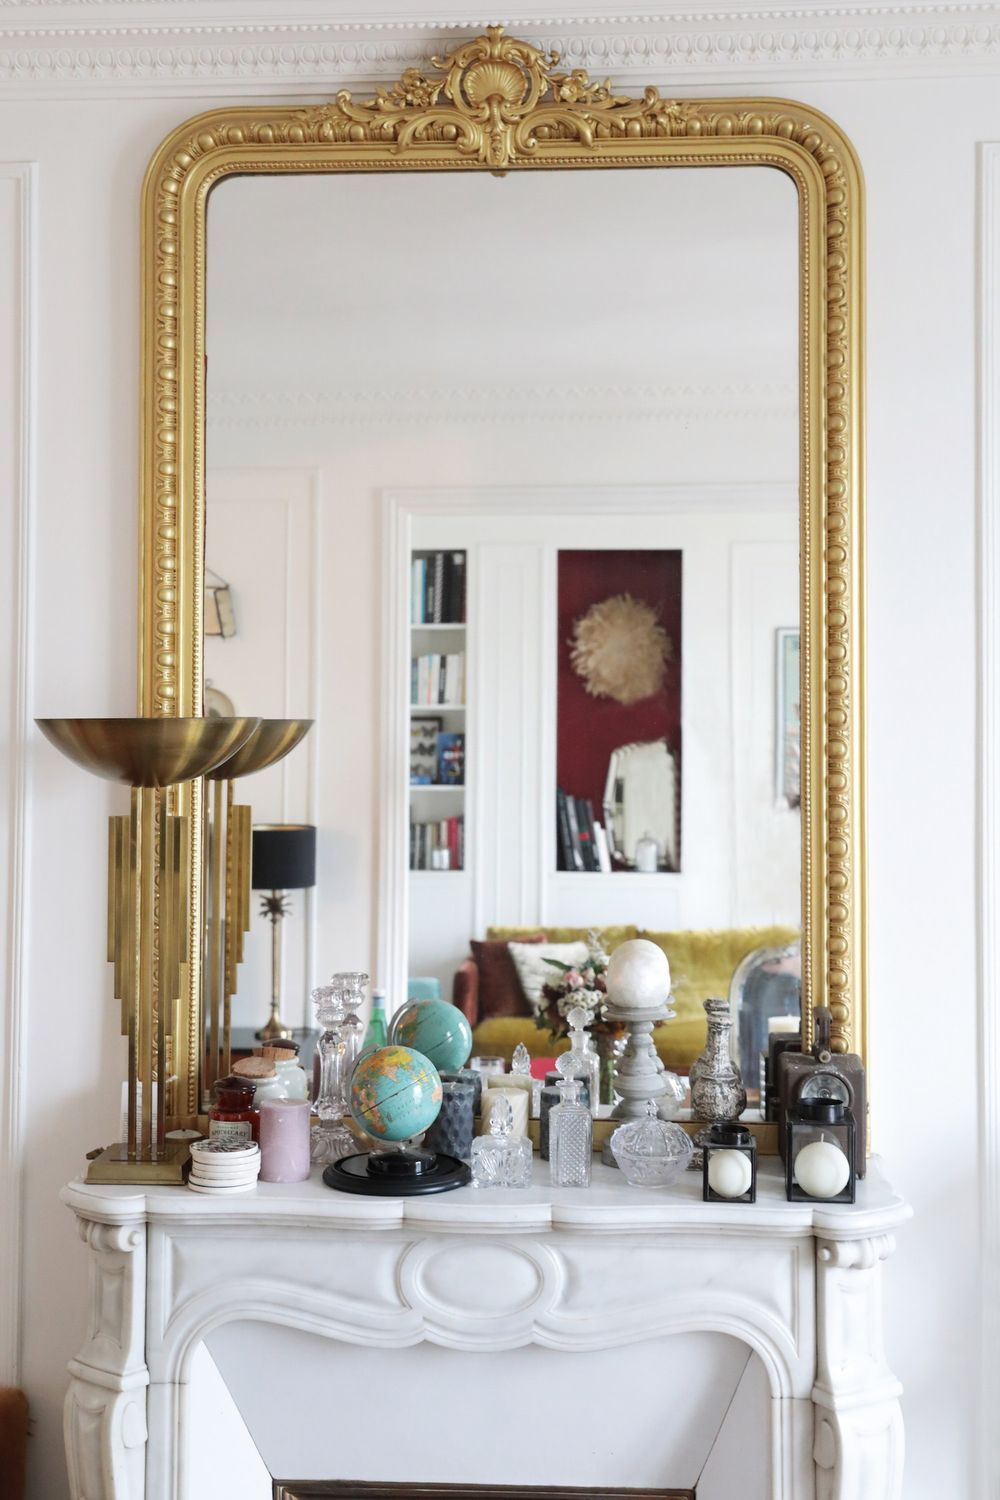 Parisian fireplace with Globe and white vintage fragrance bottles via Hello-hello Camille Omerin